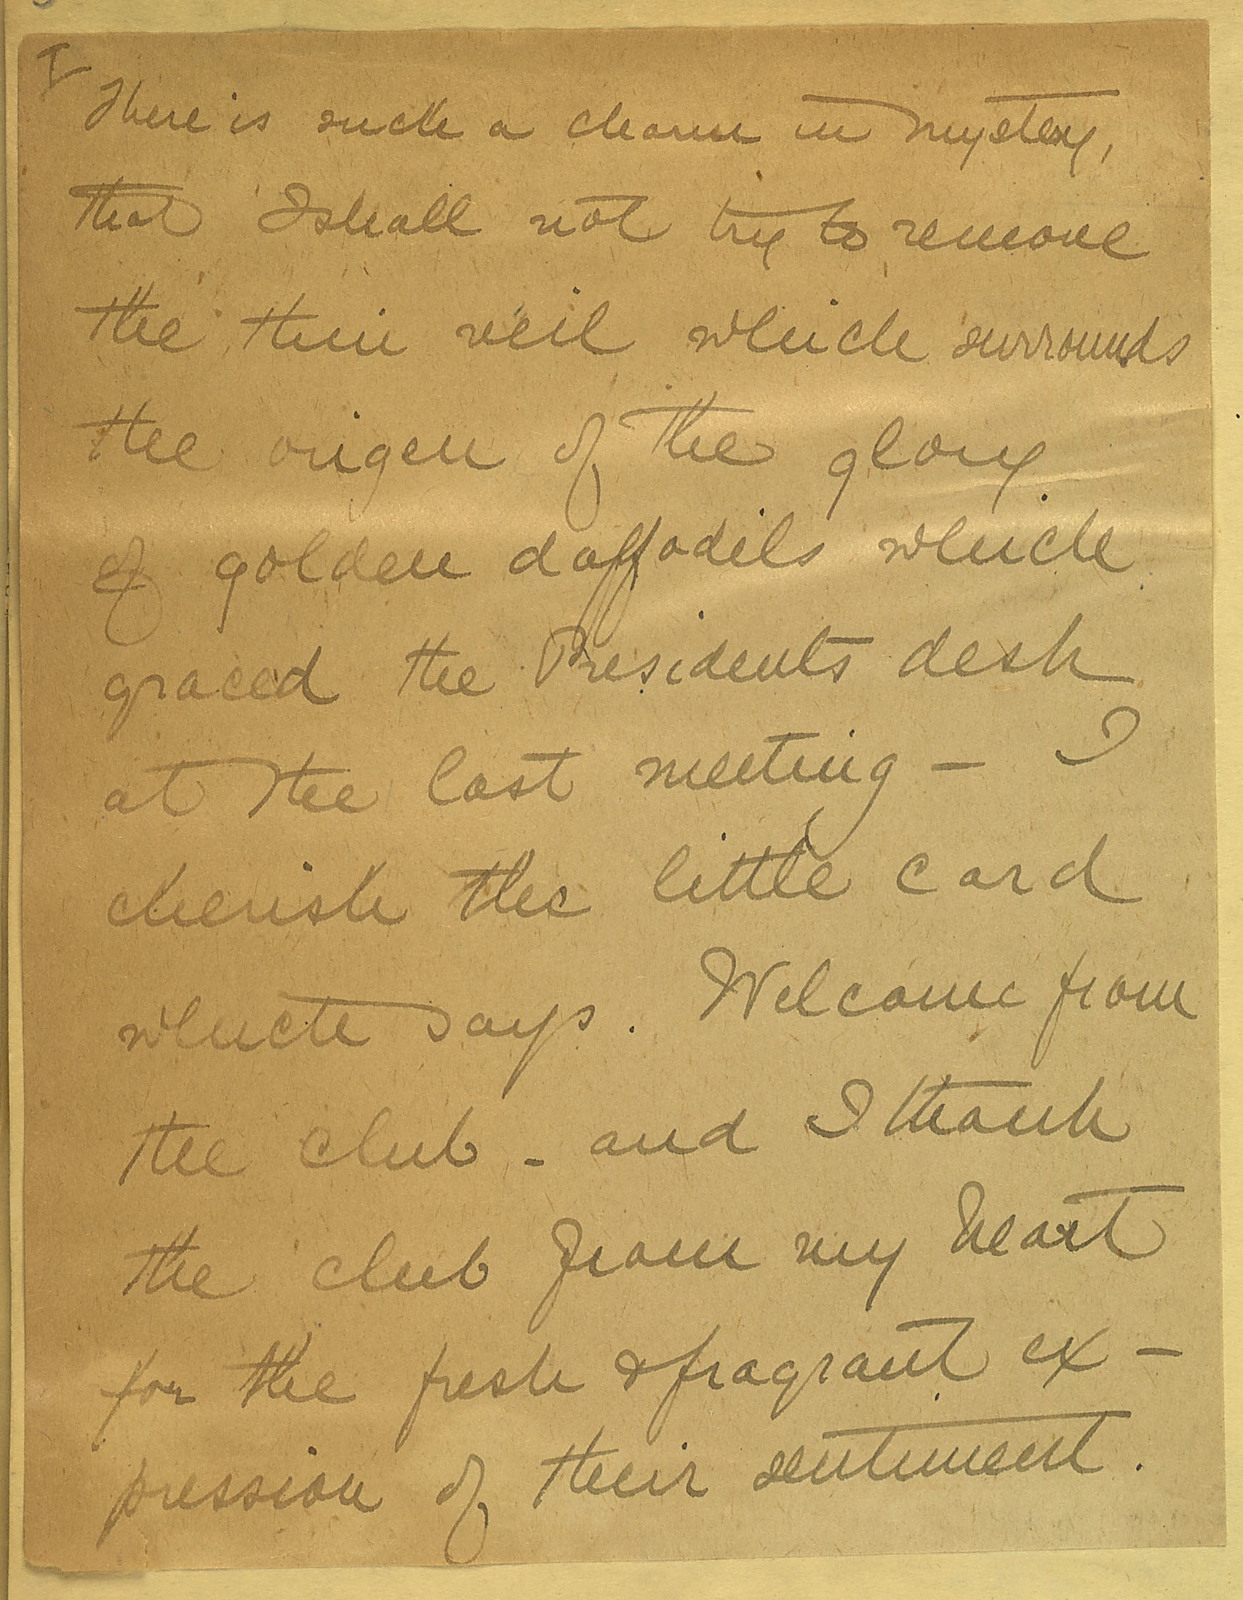 Draft thank you from Anne Fitzhugh Miller to Geneva Political Equality Club